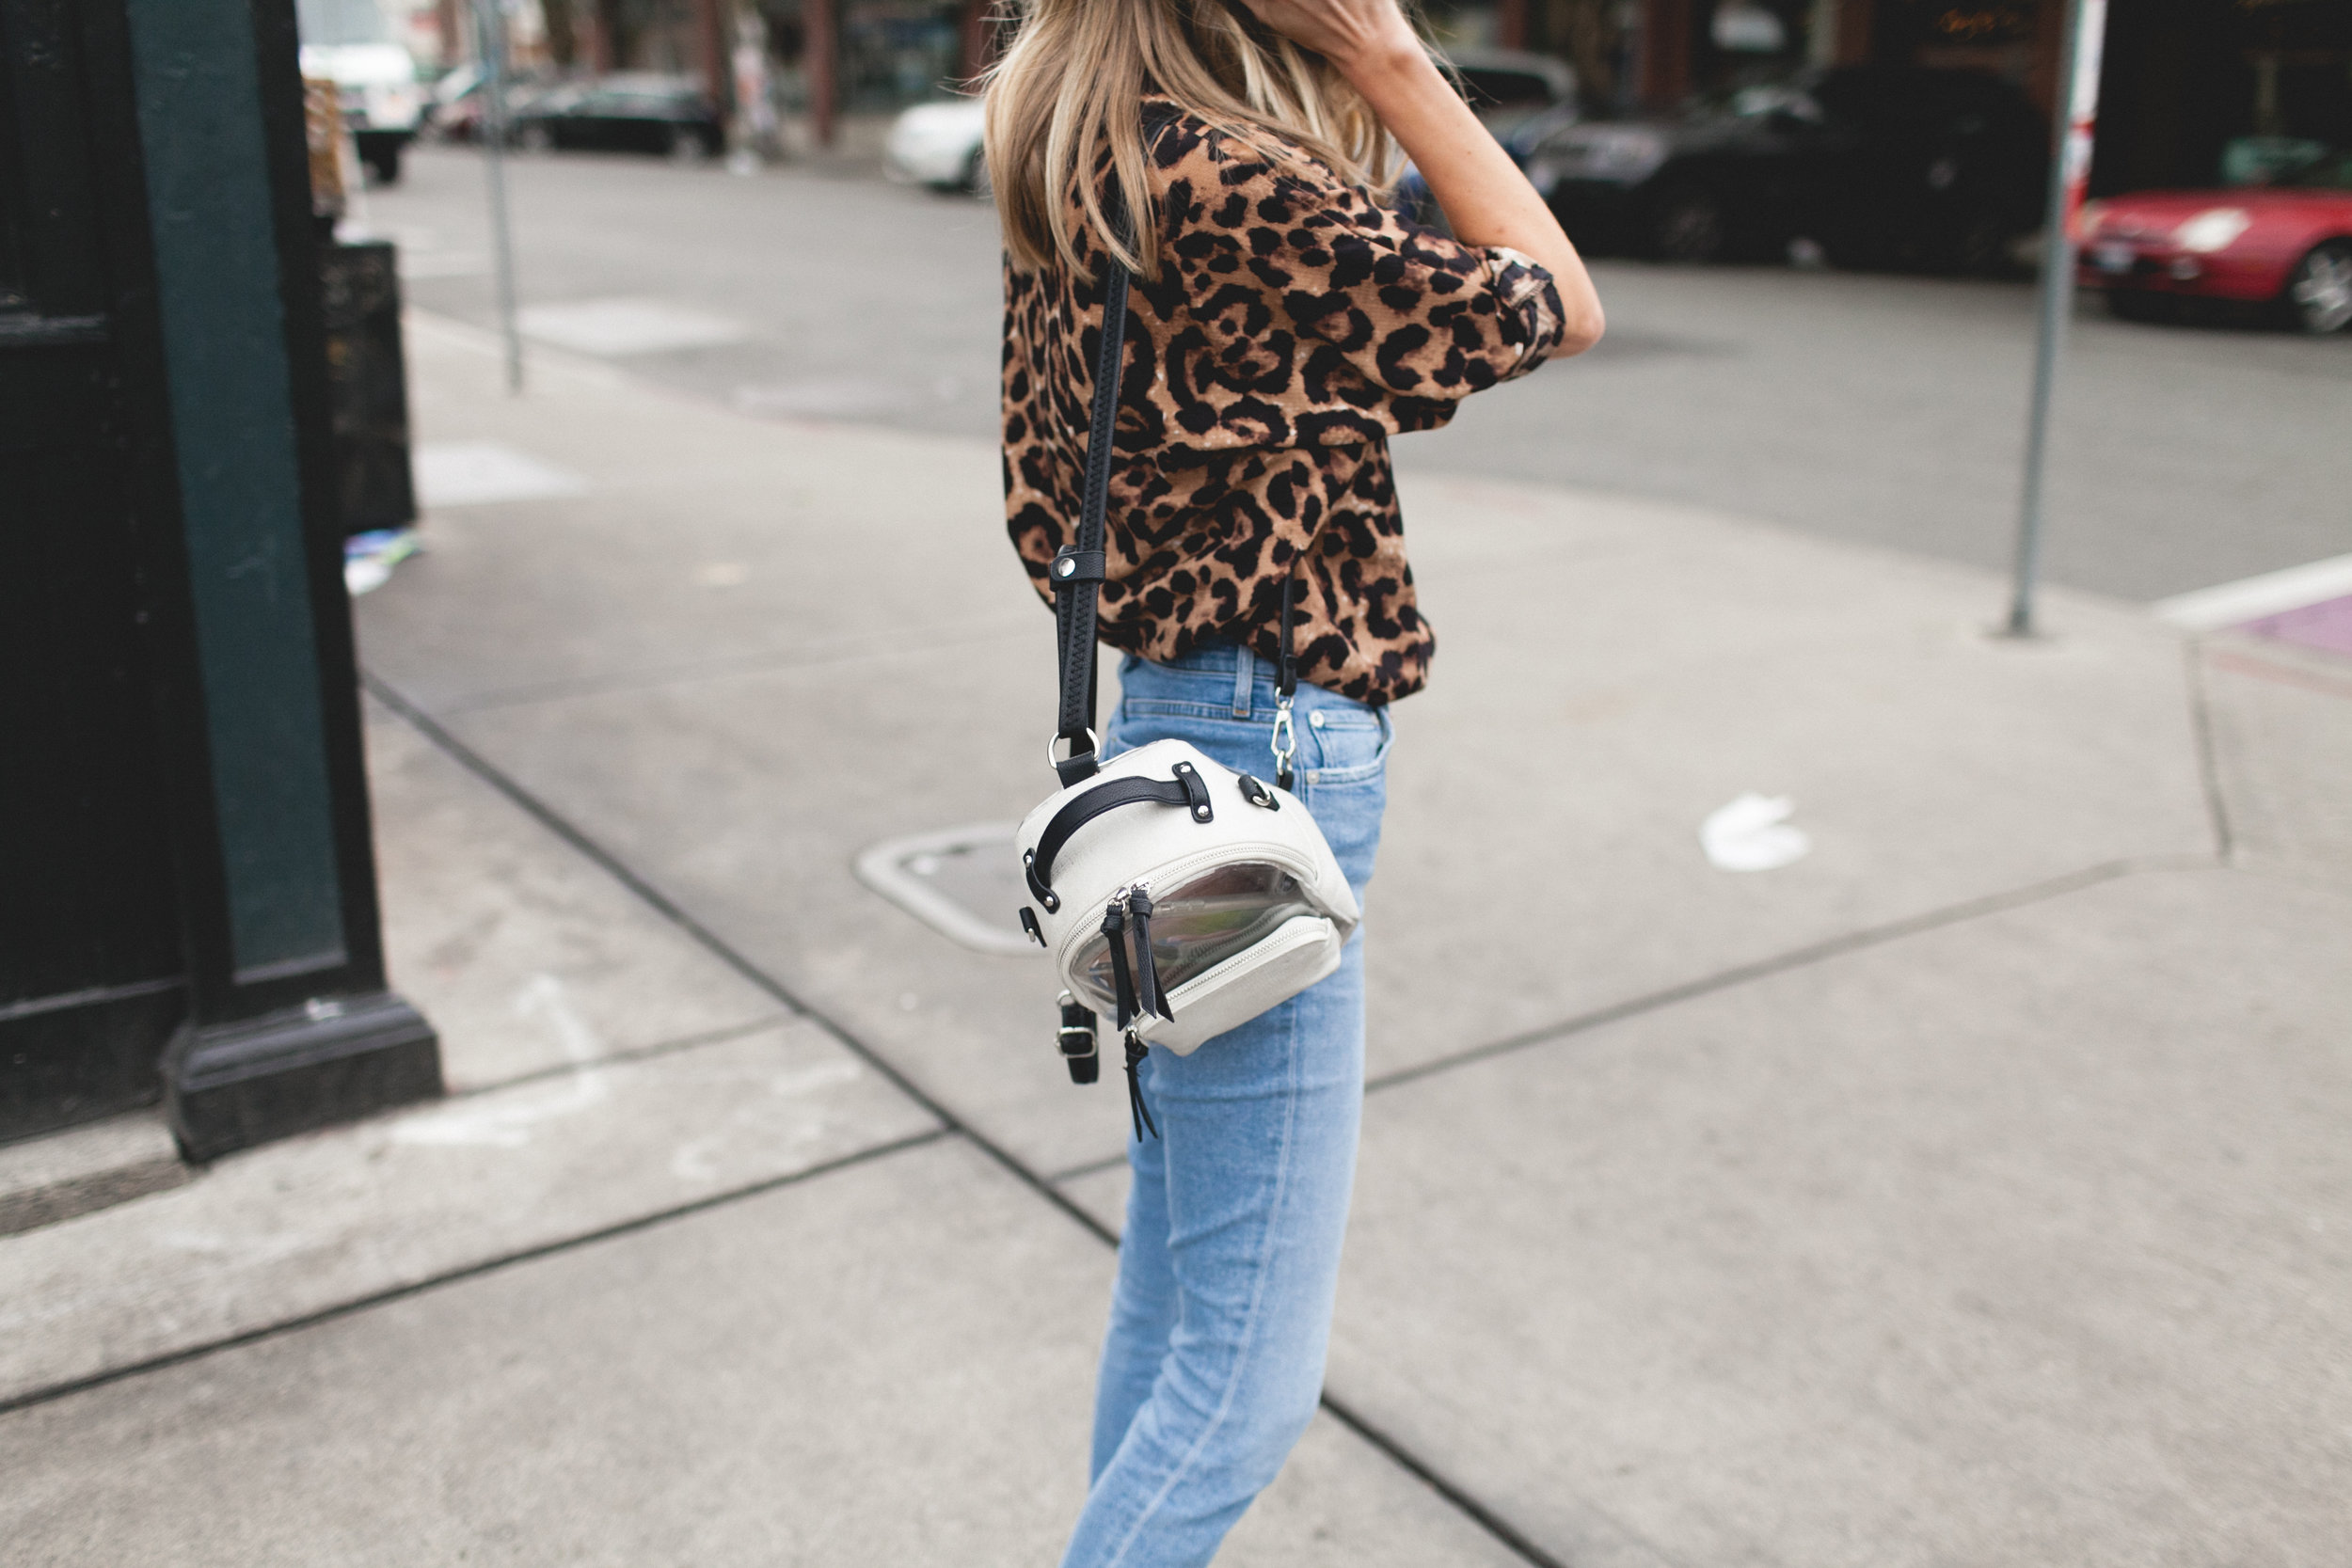 truelane, chelsea lankford, leopard print shirt, seattle, white sneakers, kizik, casual style, seattle style blogger